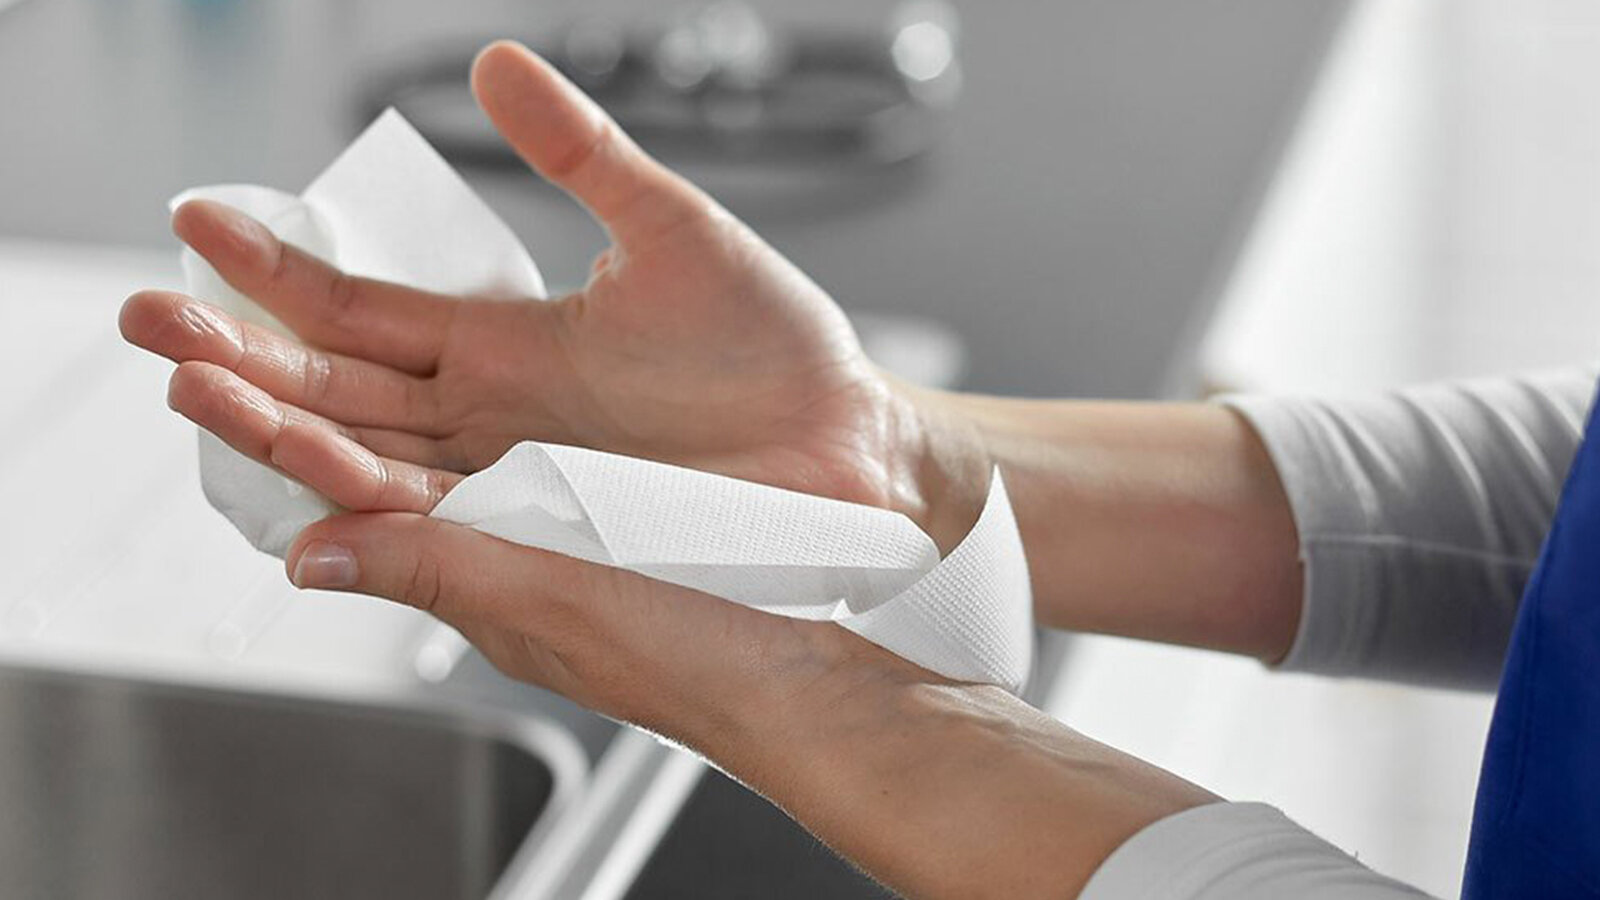 Caucasian drying hands with a white paper hand towel